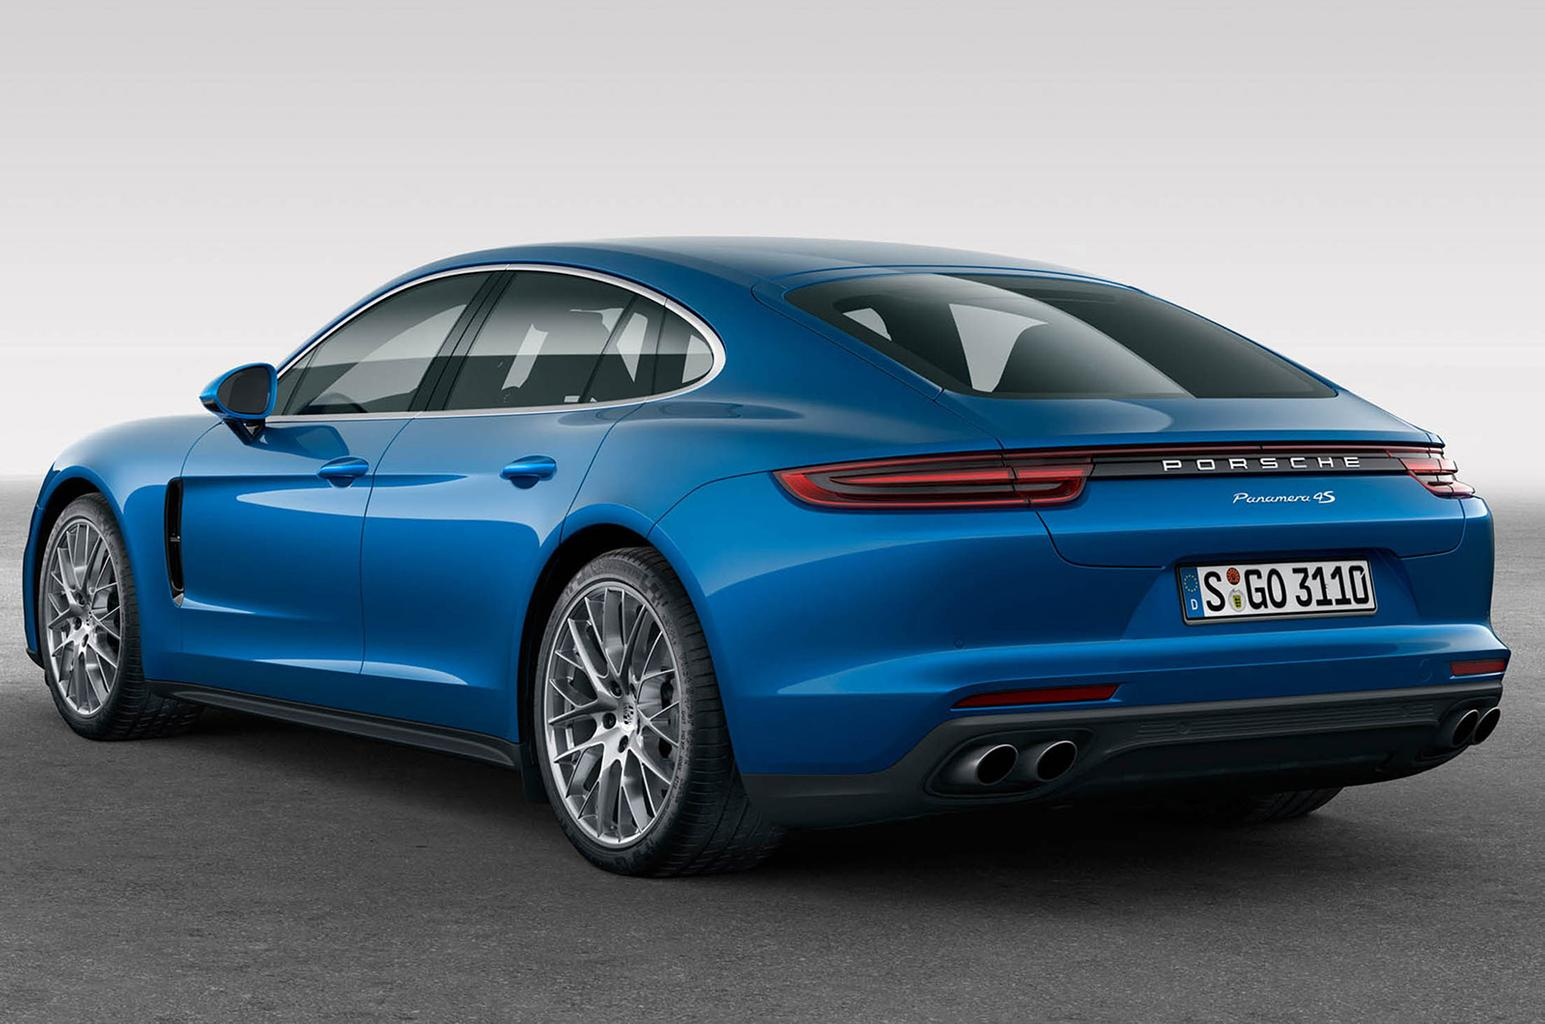 New Porsche Panamera - entry level models added